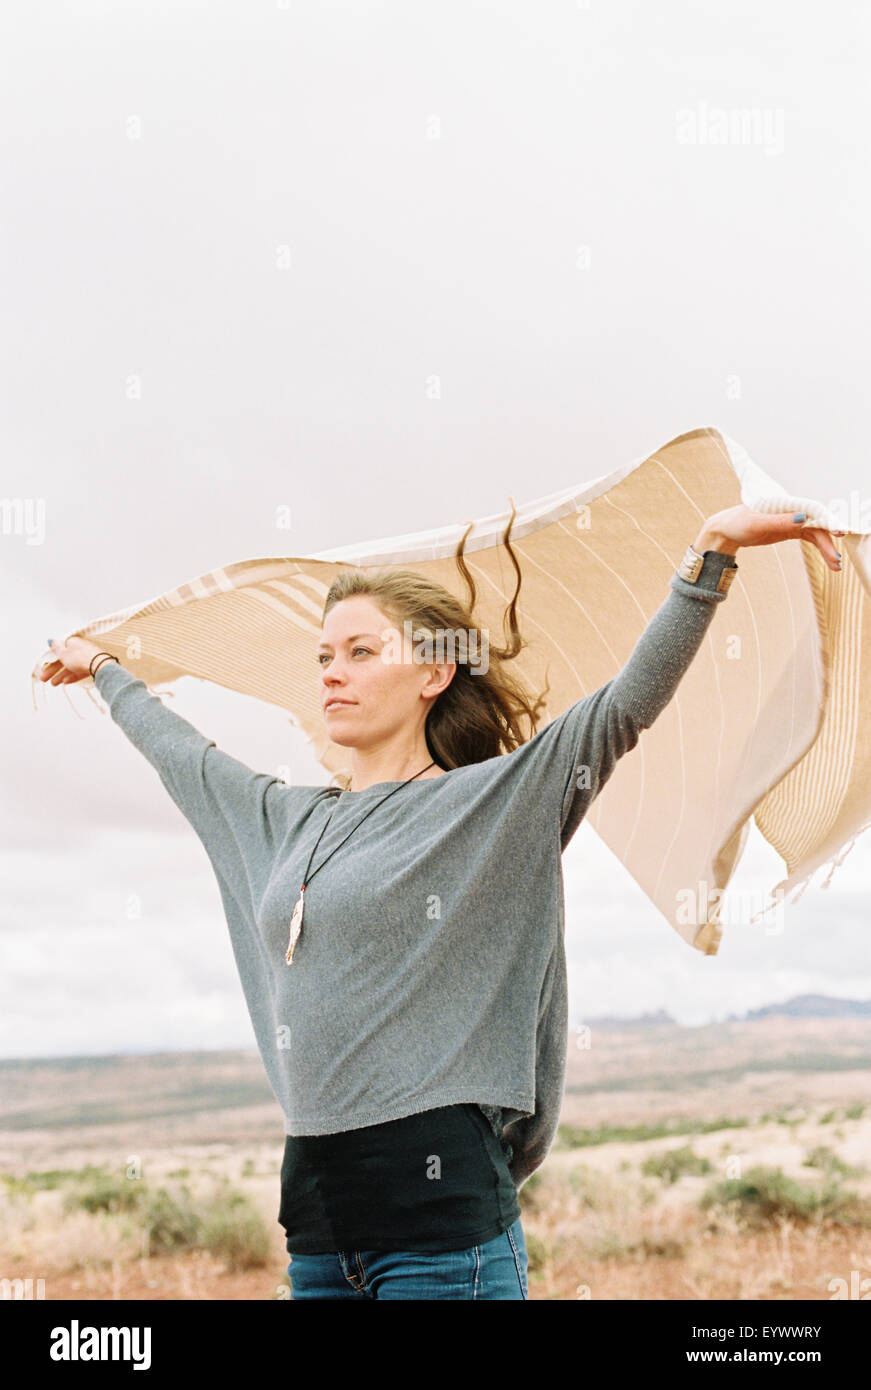 Woman holding a wrap fluttering in the wind. - Stock Image